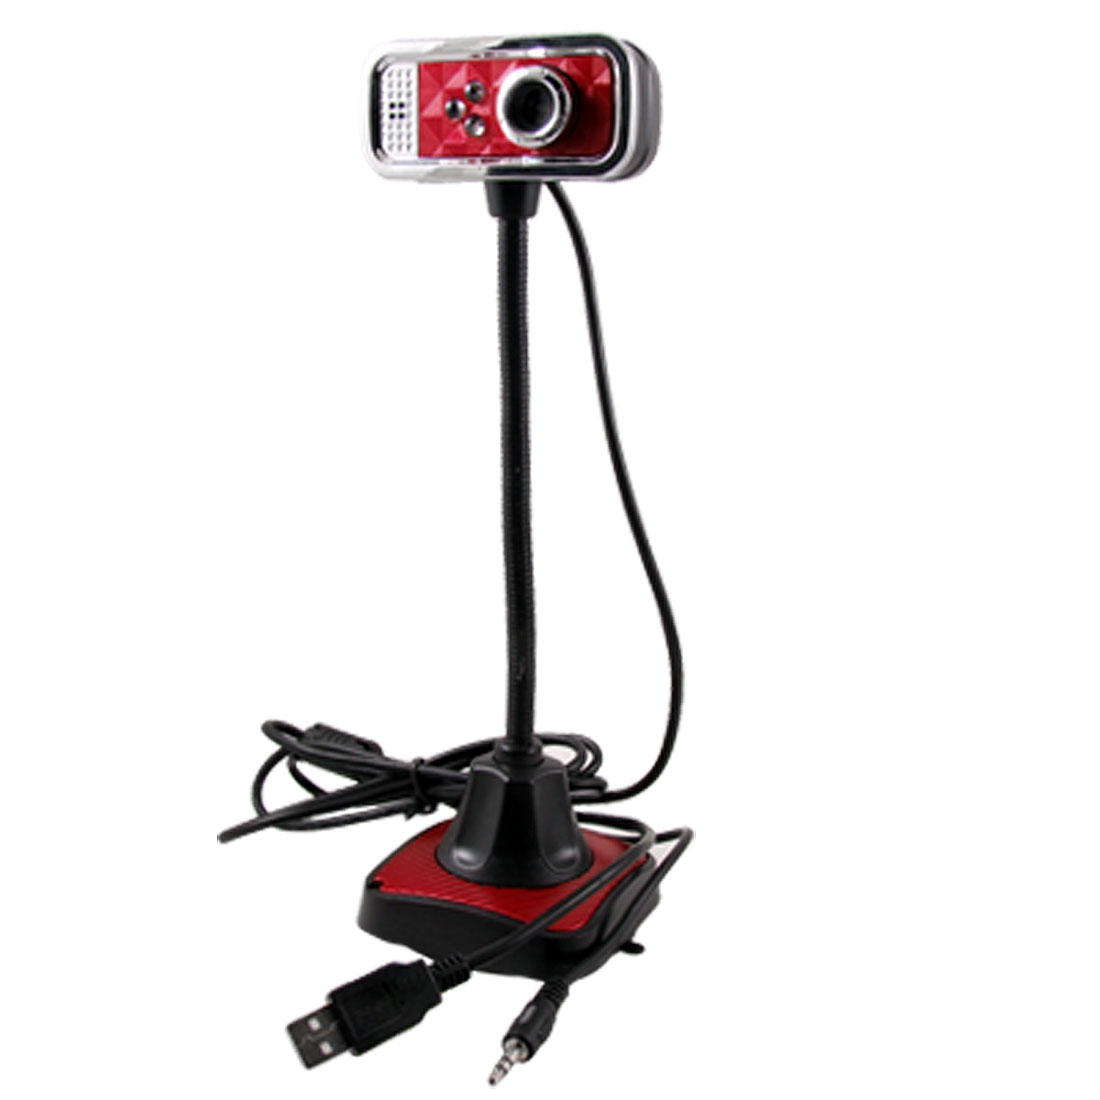 PC Computer Notebook 3.5mm USB 2.0 Microphone Mic Web Cam Webcam Camera